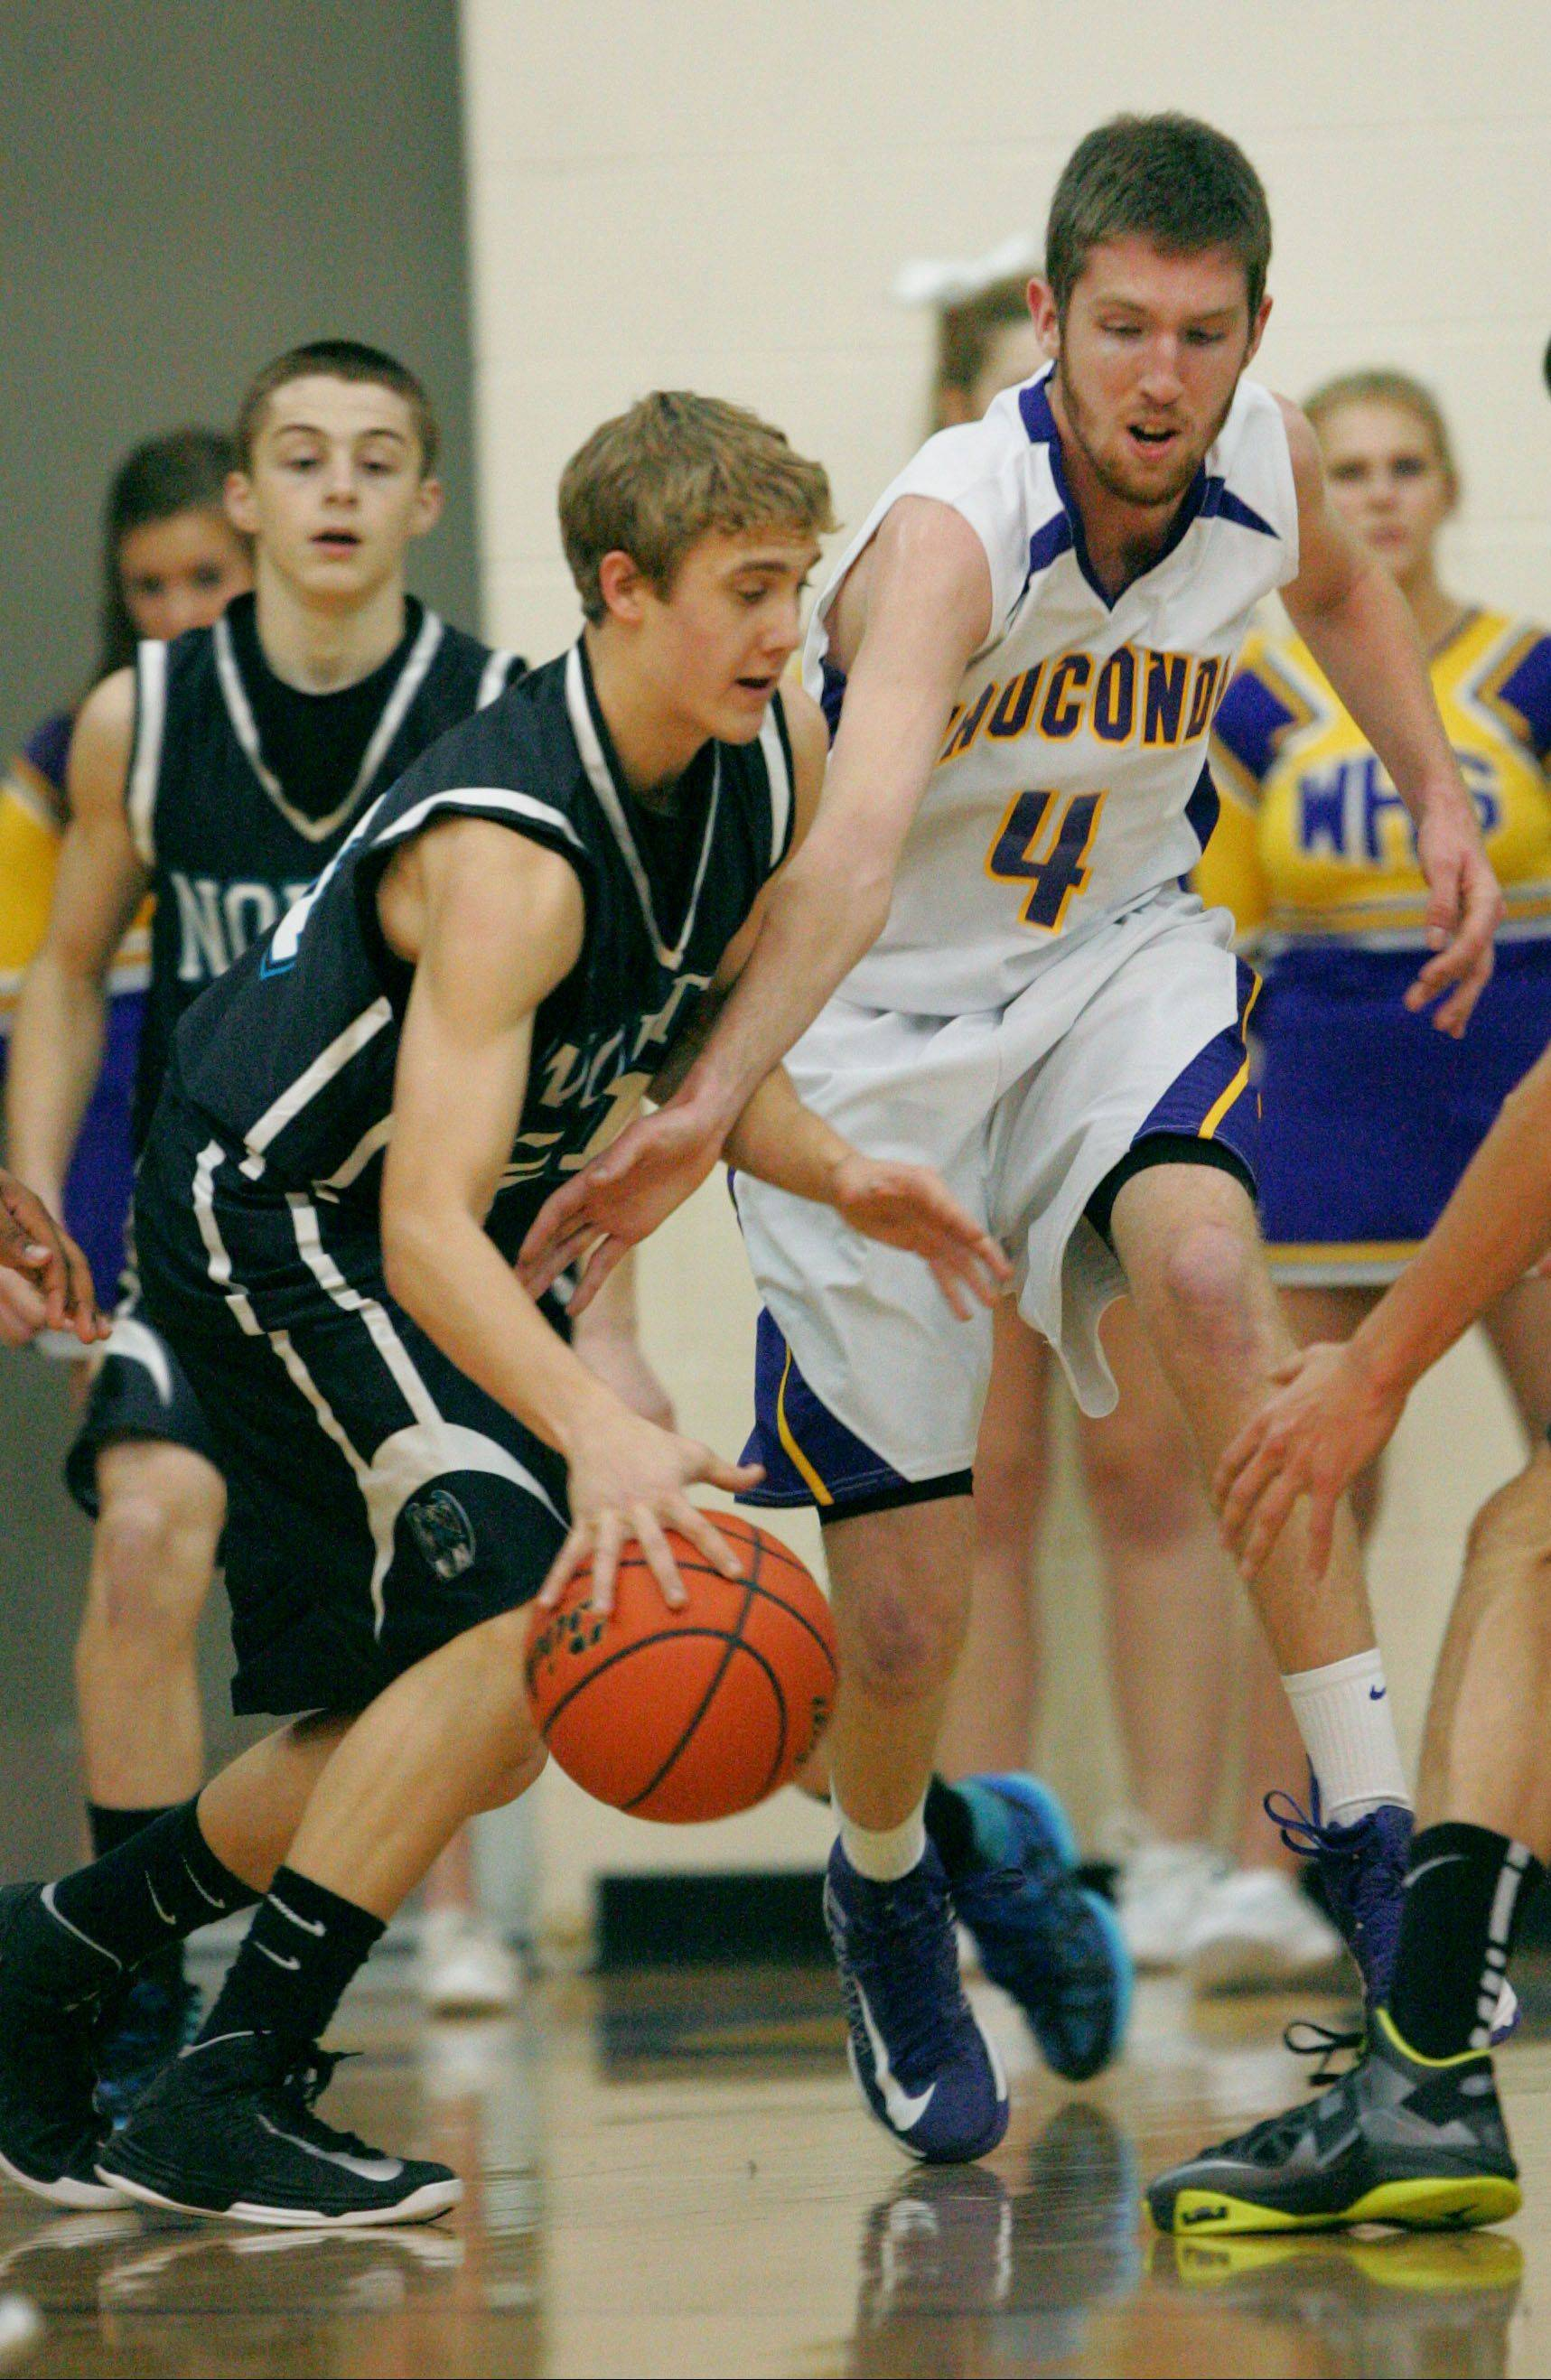 Wauconda's Ricky Sidlowski, right, tries to steal the ball from Woodstock North's Shane Zieman on Monday at Wauconda.